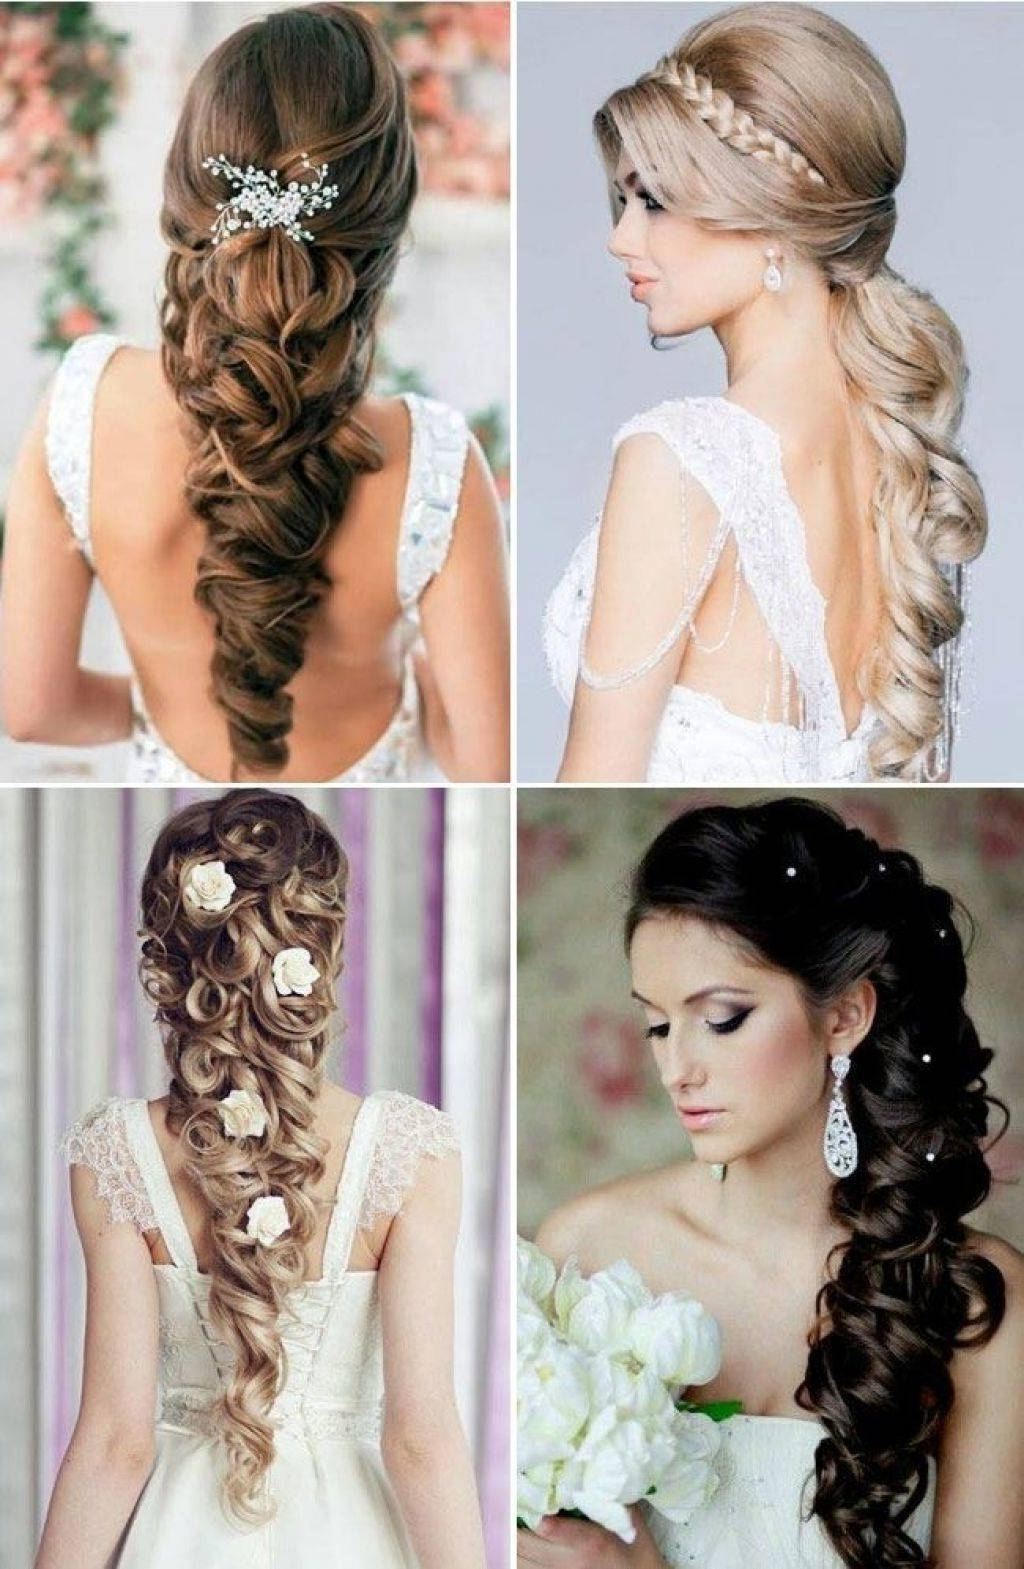 Well Known Wedding Hairstyles For Very Long Hair Inside The Long Hairstyle For Bride – Hairstyle (View 15 of 15)